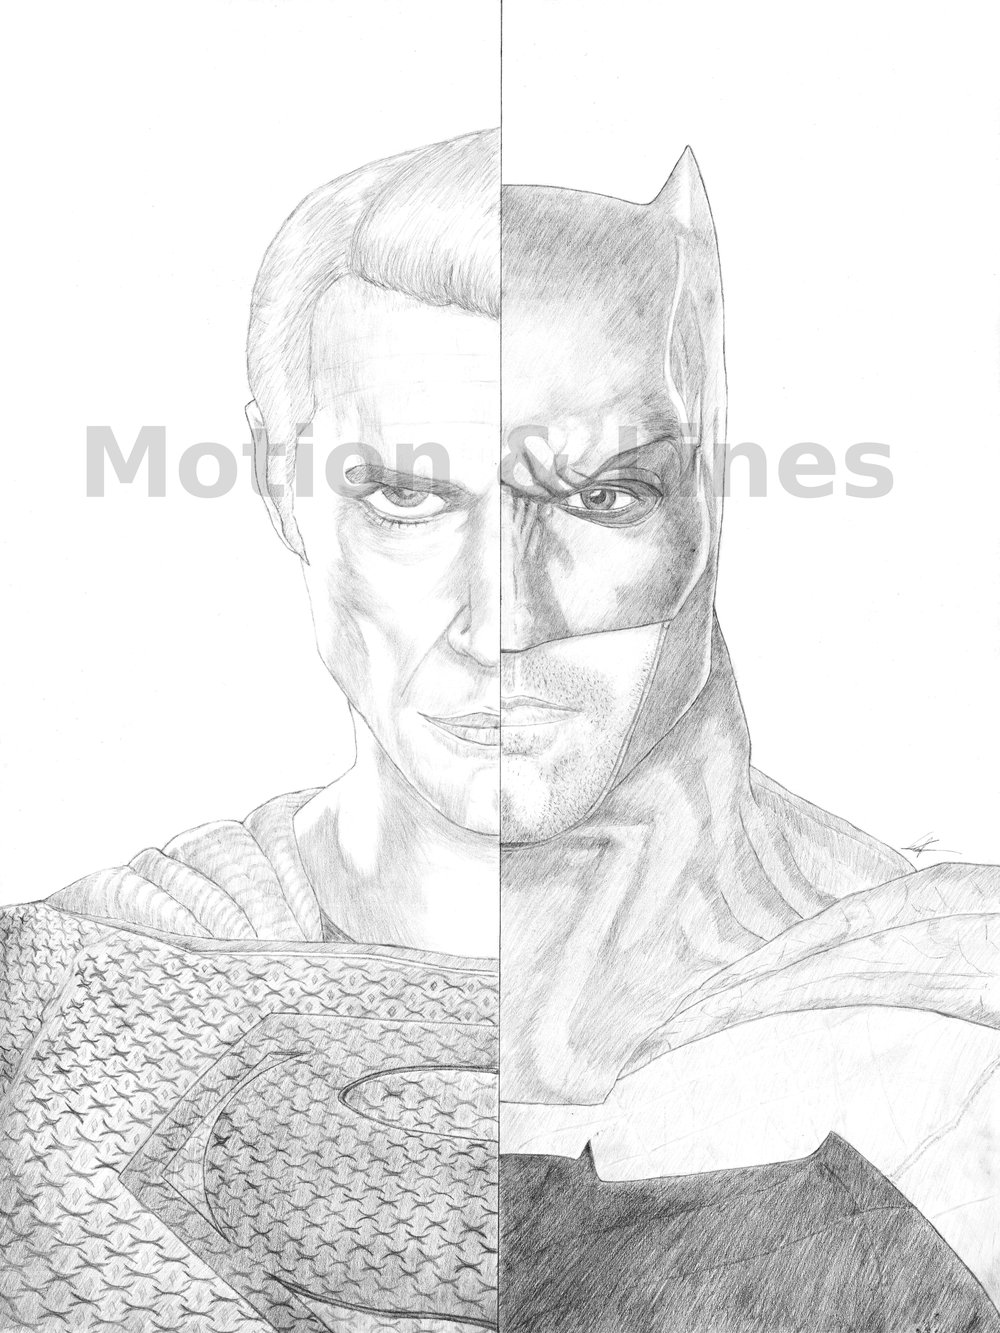 Batman/Superman   18x24, drawn on Bristol paper with Tombow pencils. Prints available at the Store in both 18x24 and 11x17 sizes.